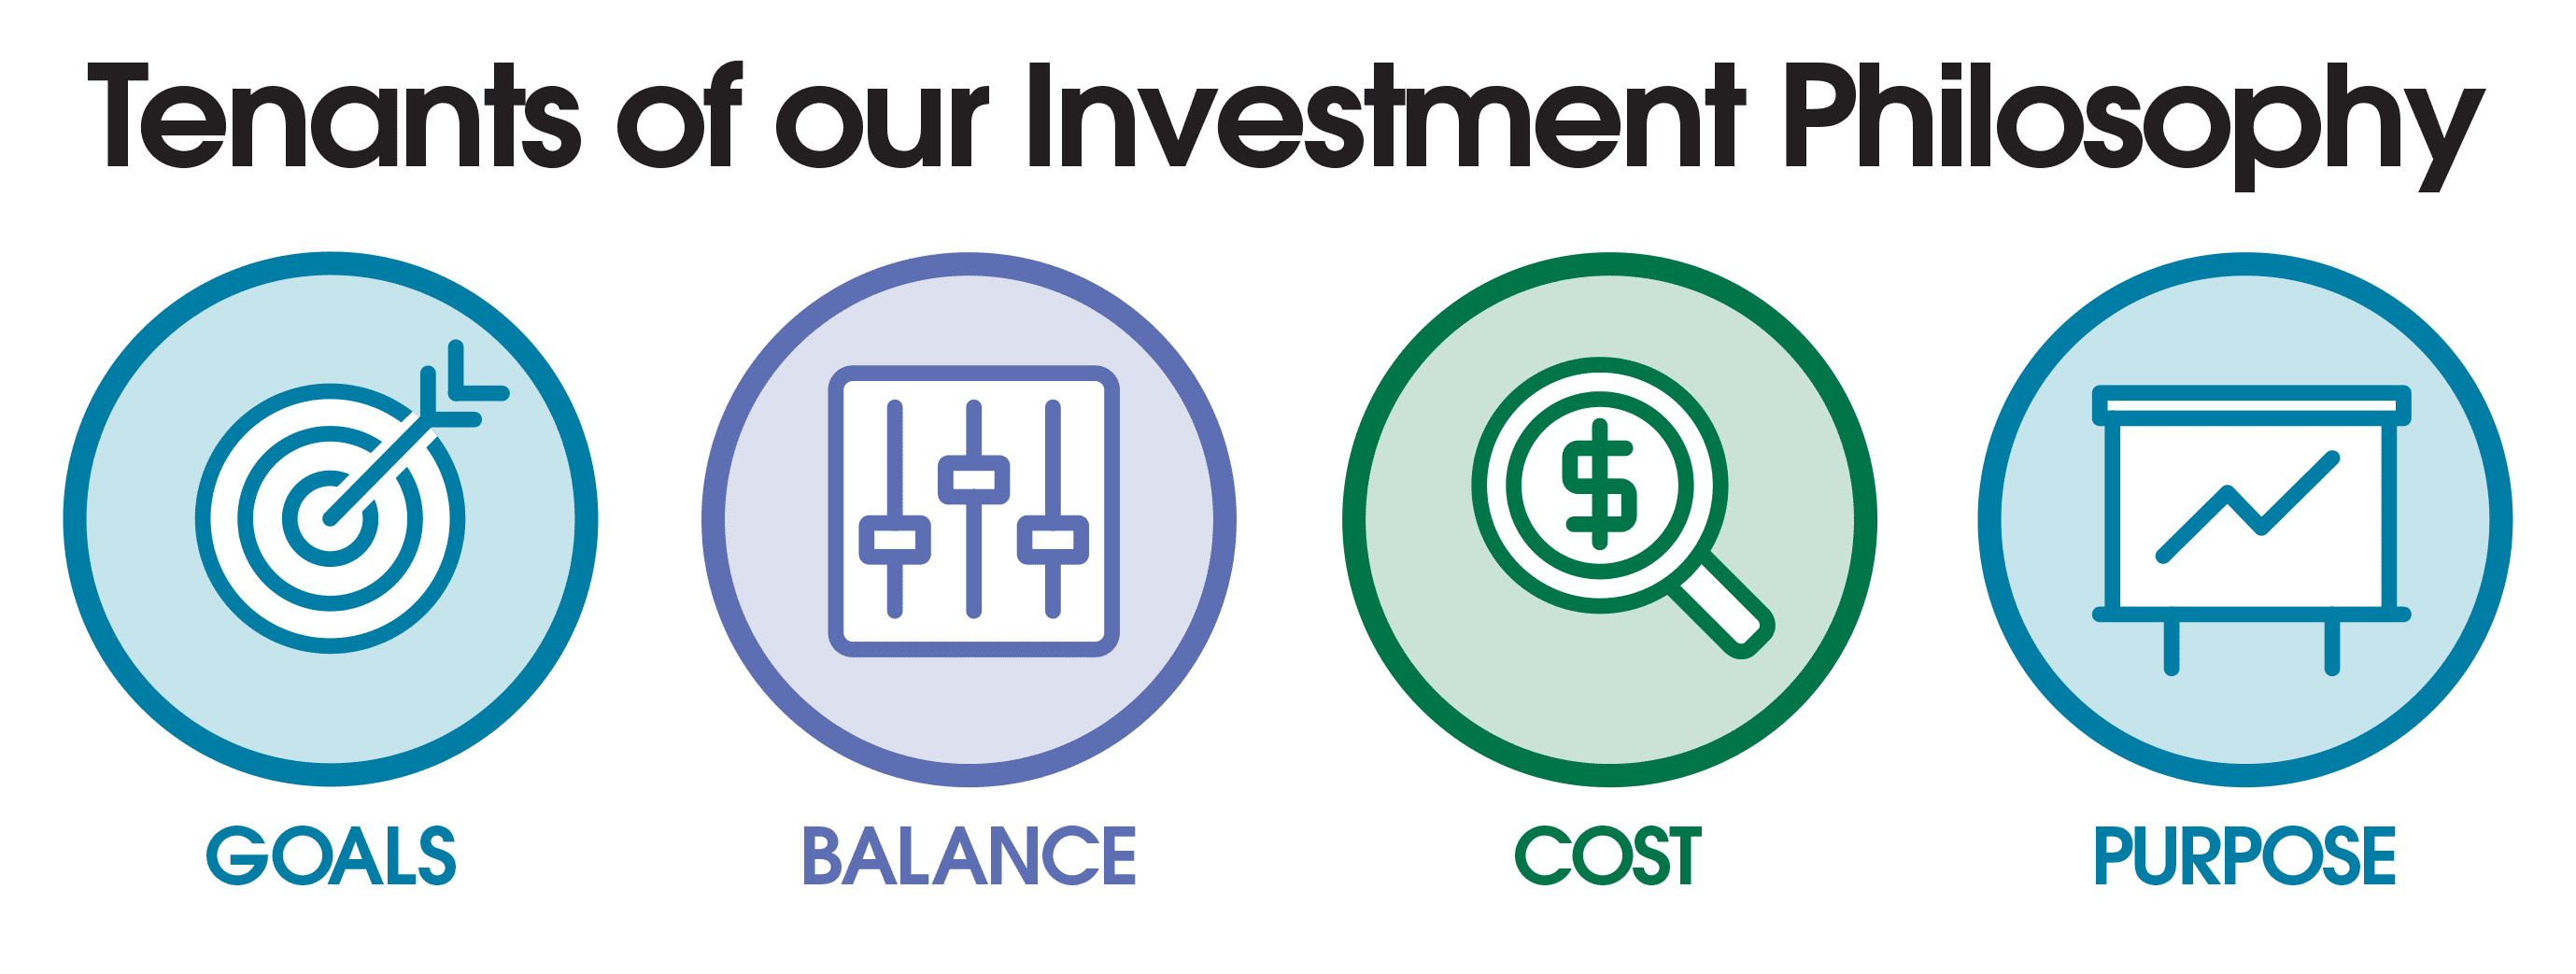 Cahaba Wealth Management investment philosophy